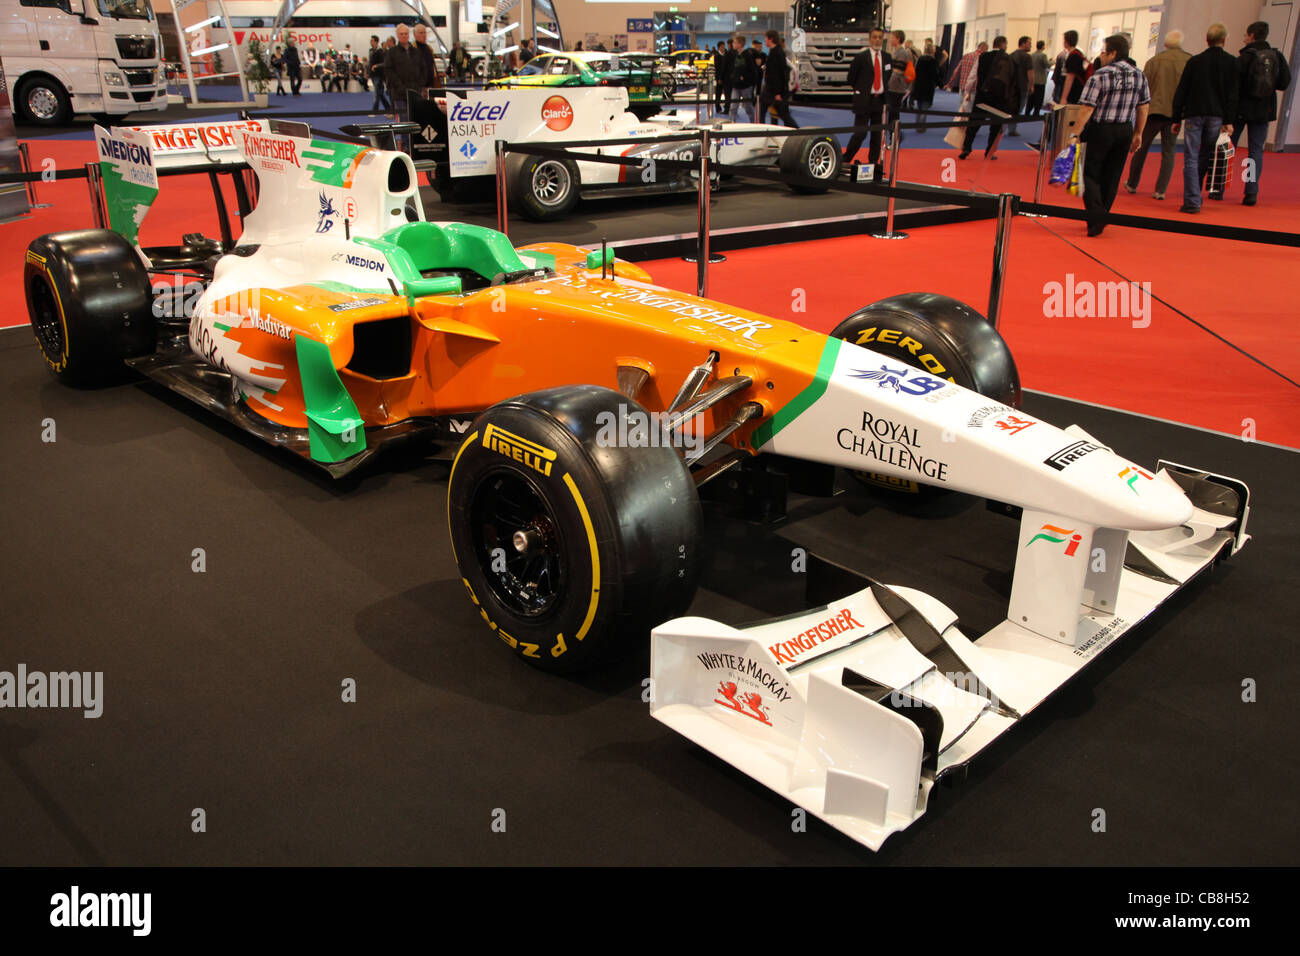 Force India VJM 04 Formula 1 racing car shown at the Essen Motor Show in Essen, Germany, on November 29, 2011 - Stock Image